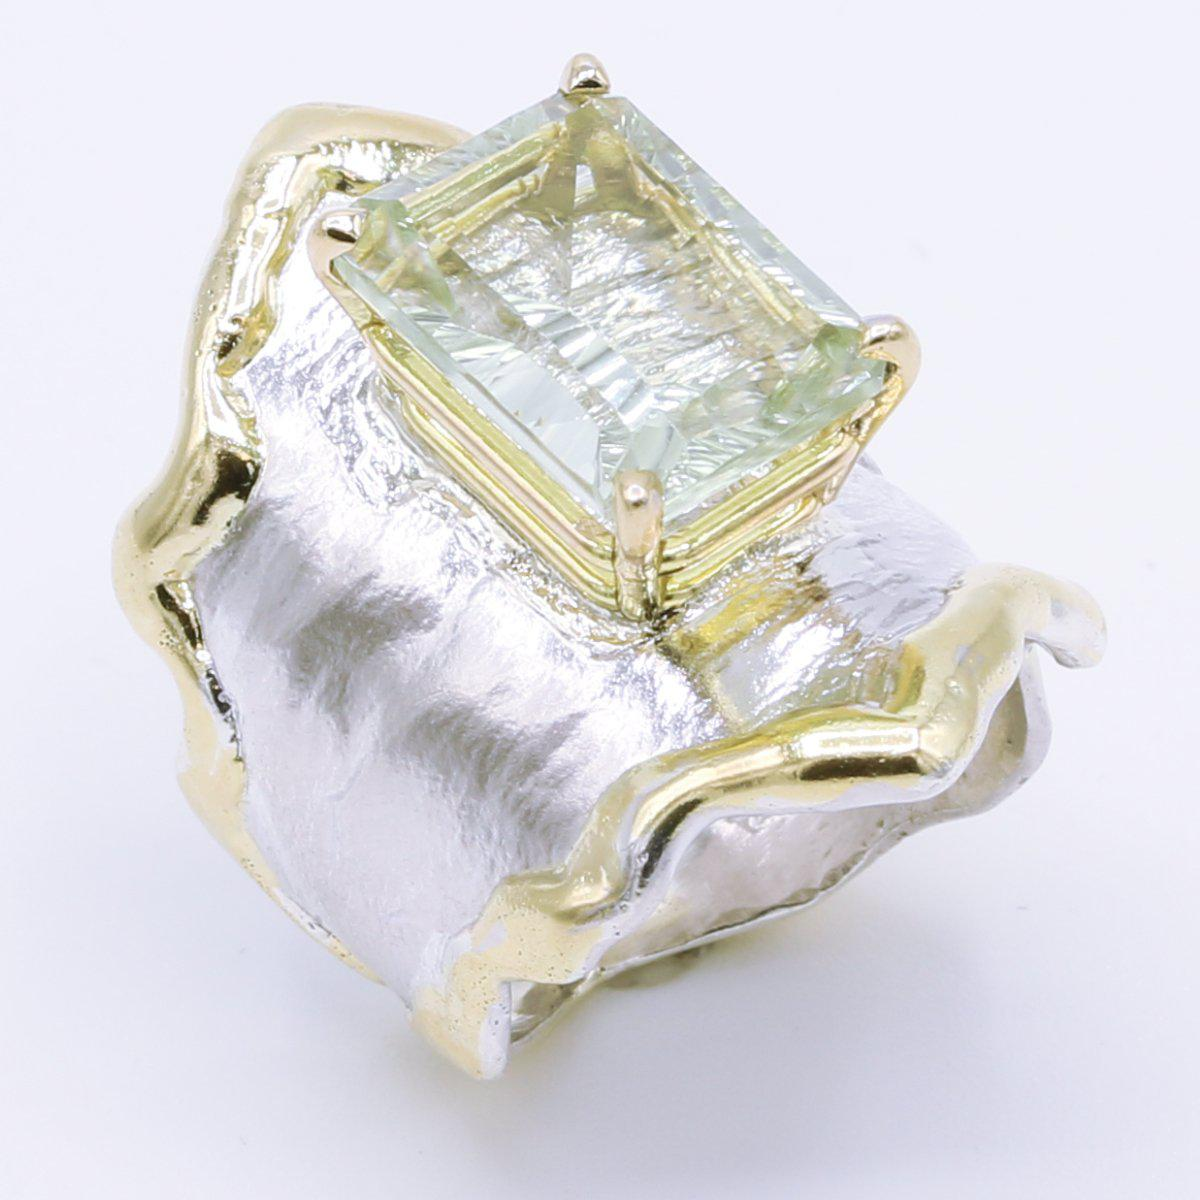 14K Gold & Crystalline Silver Prasiolite Ring - 34977-Fusion Designs-Renee Taylor Gallery